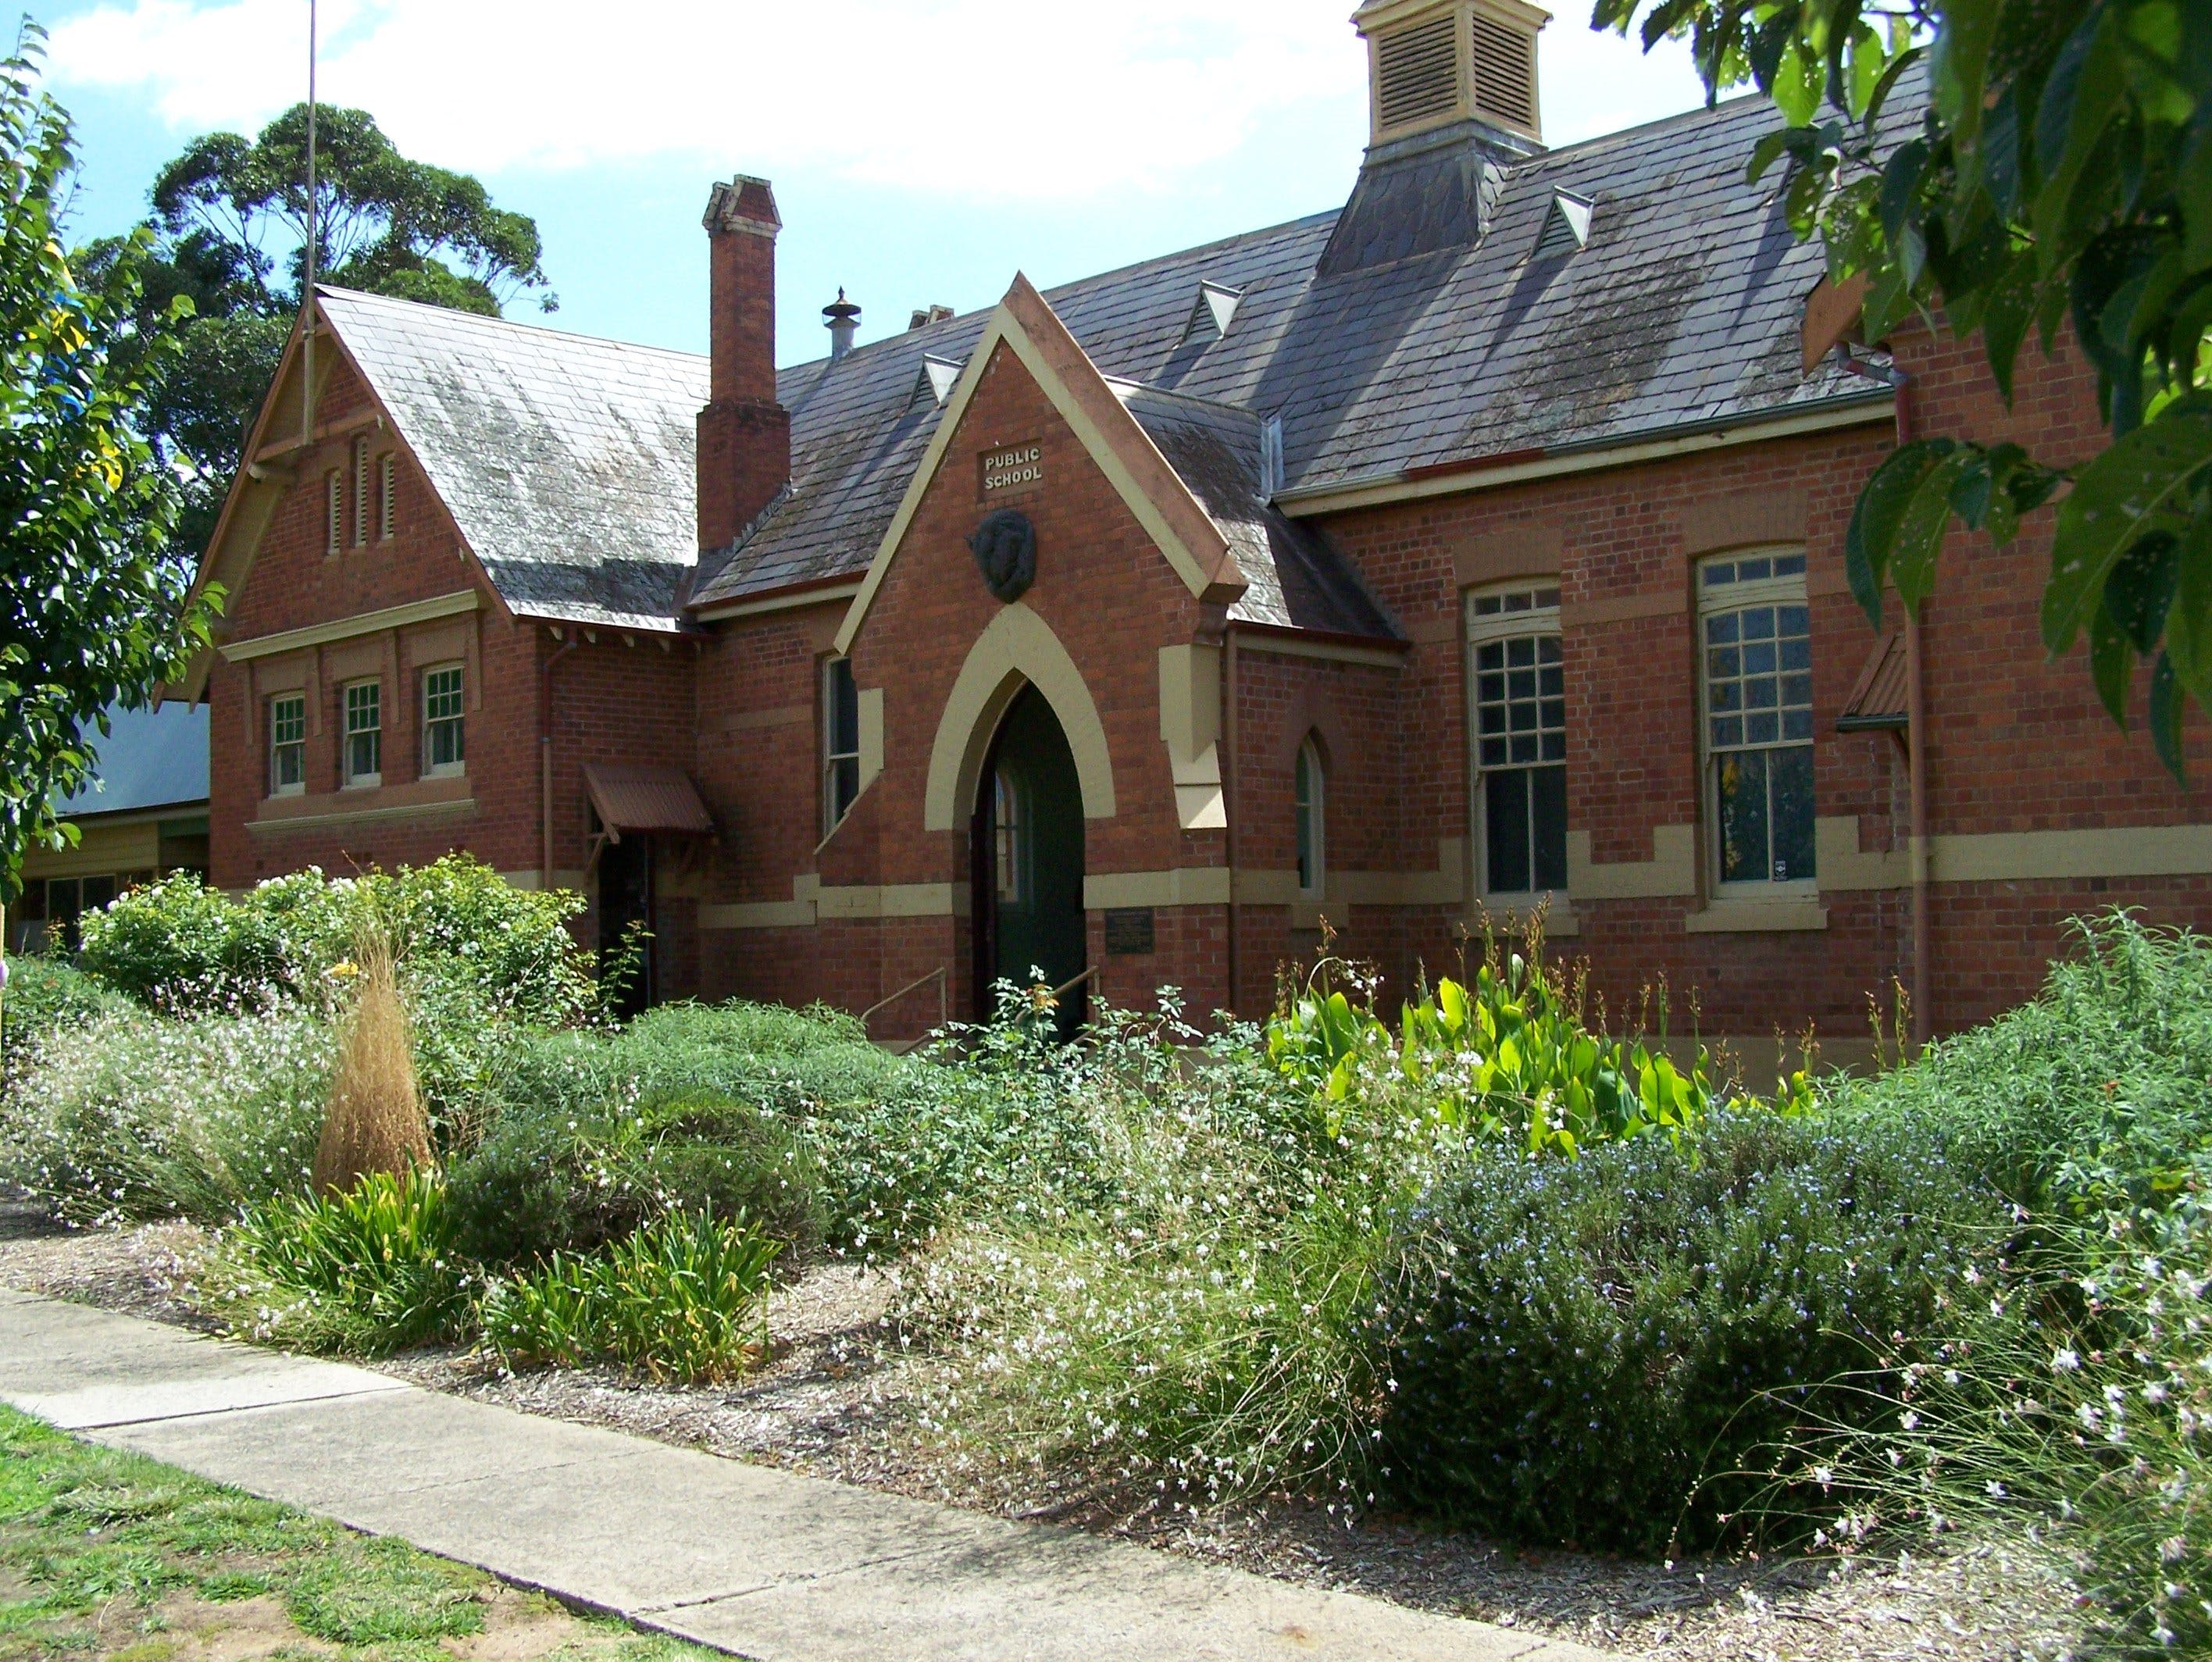 Peppin Heritage Centre - Accommodation Perth